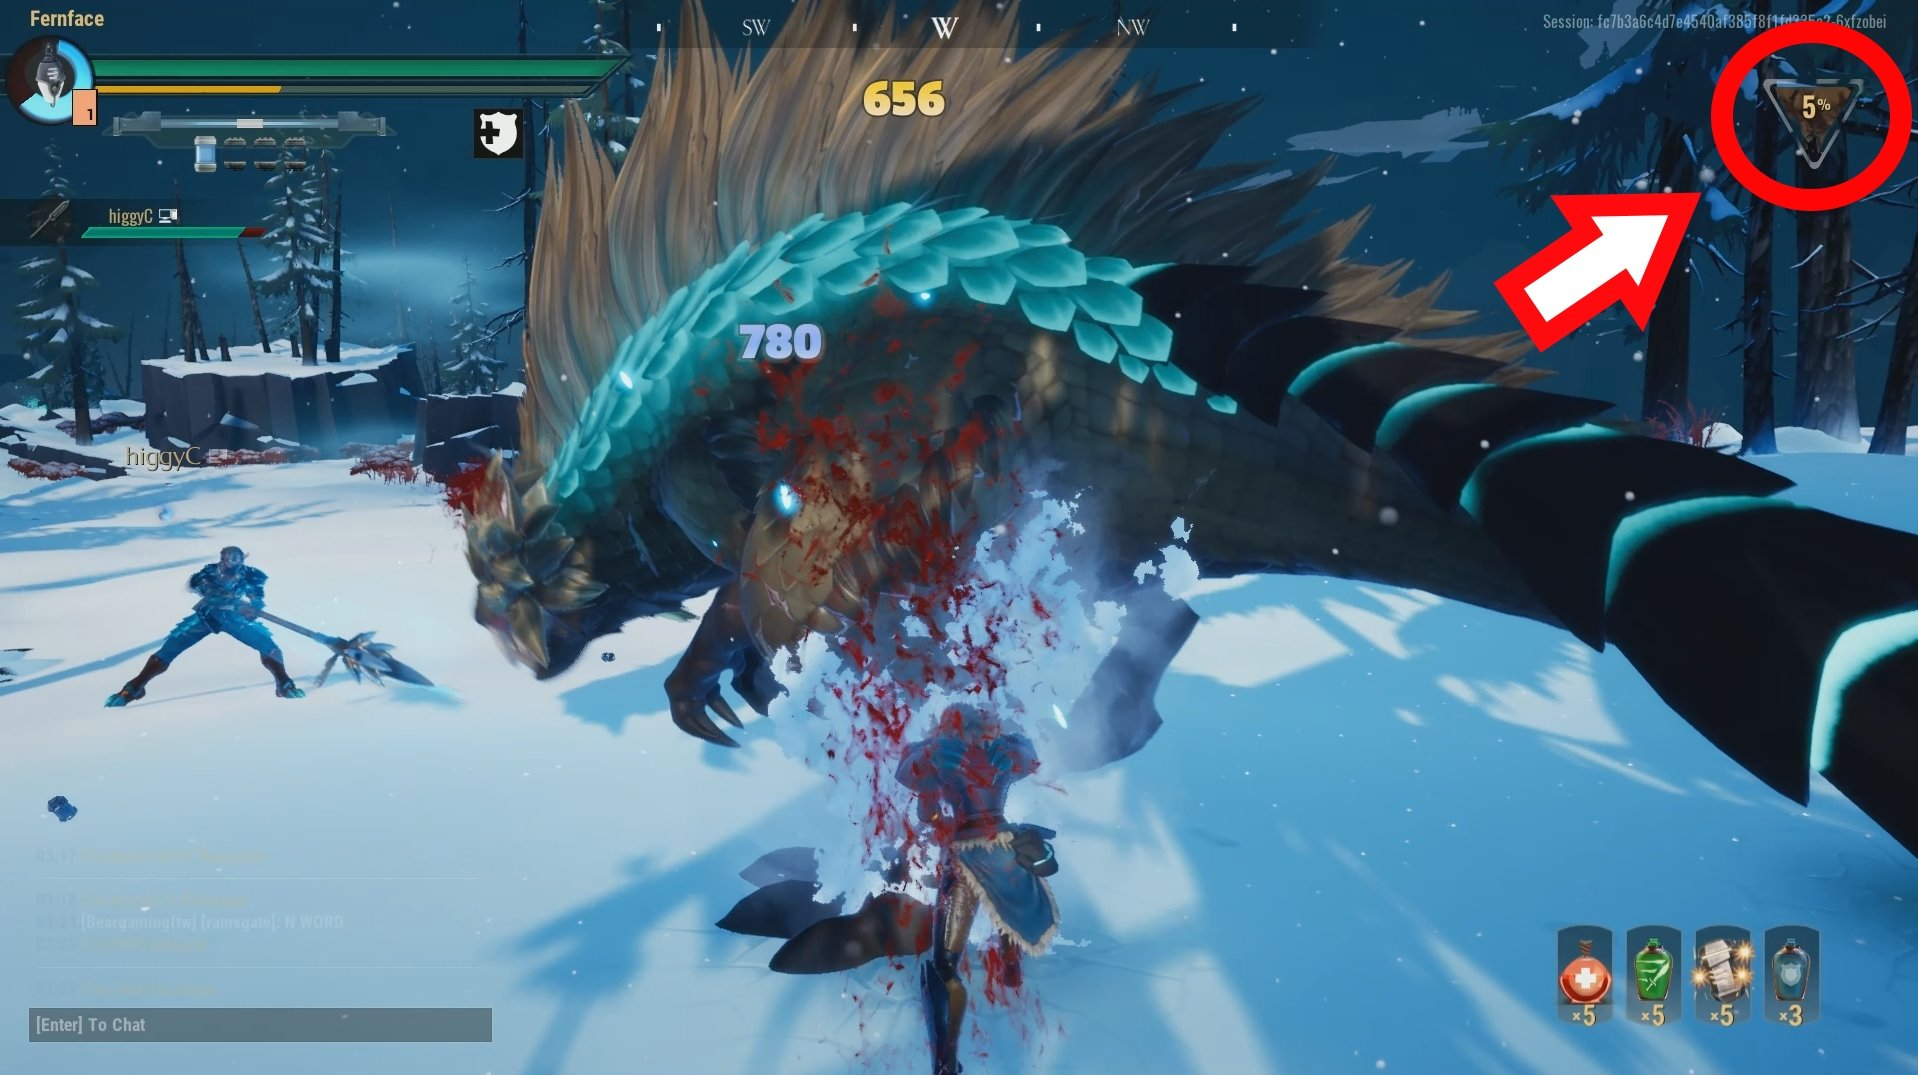 What is the Danger Meter in Dauntless and what does it do